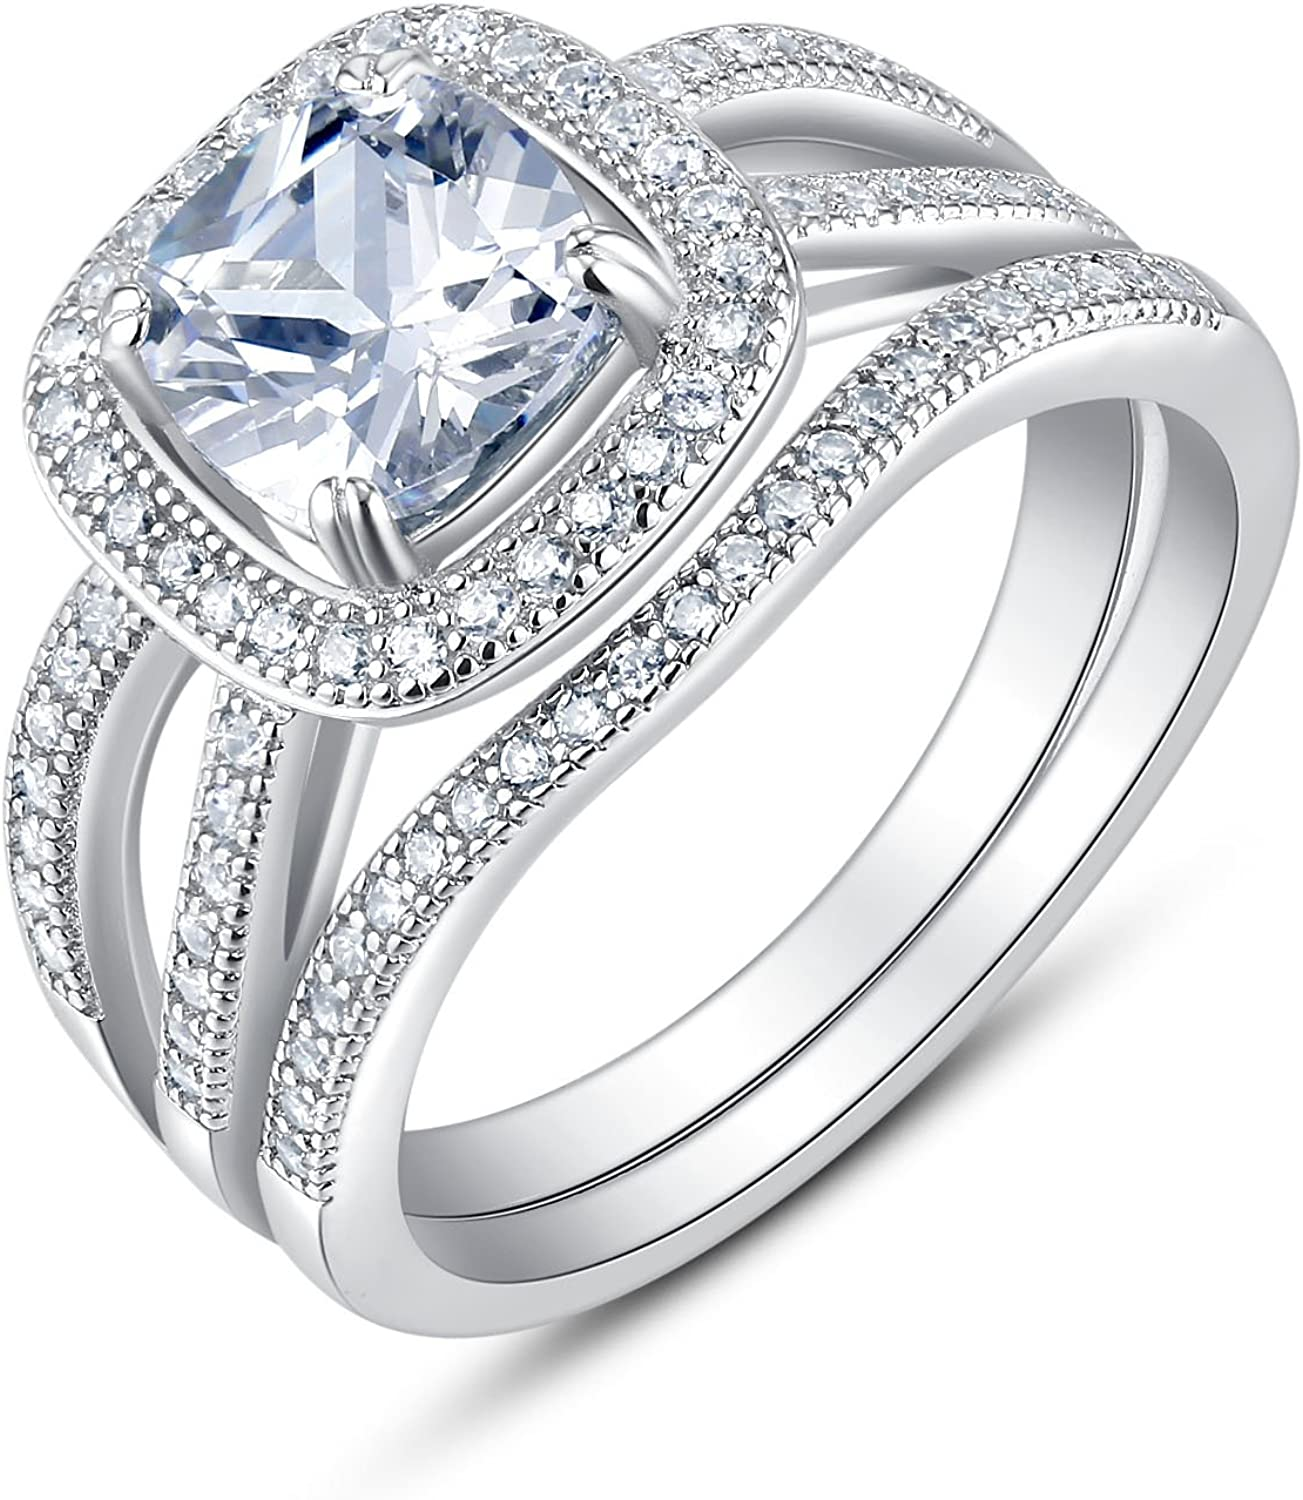 Milgraine Sterling Silver CZ Solitaire Engagement Ring with Accented Shank